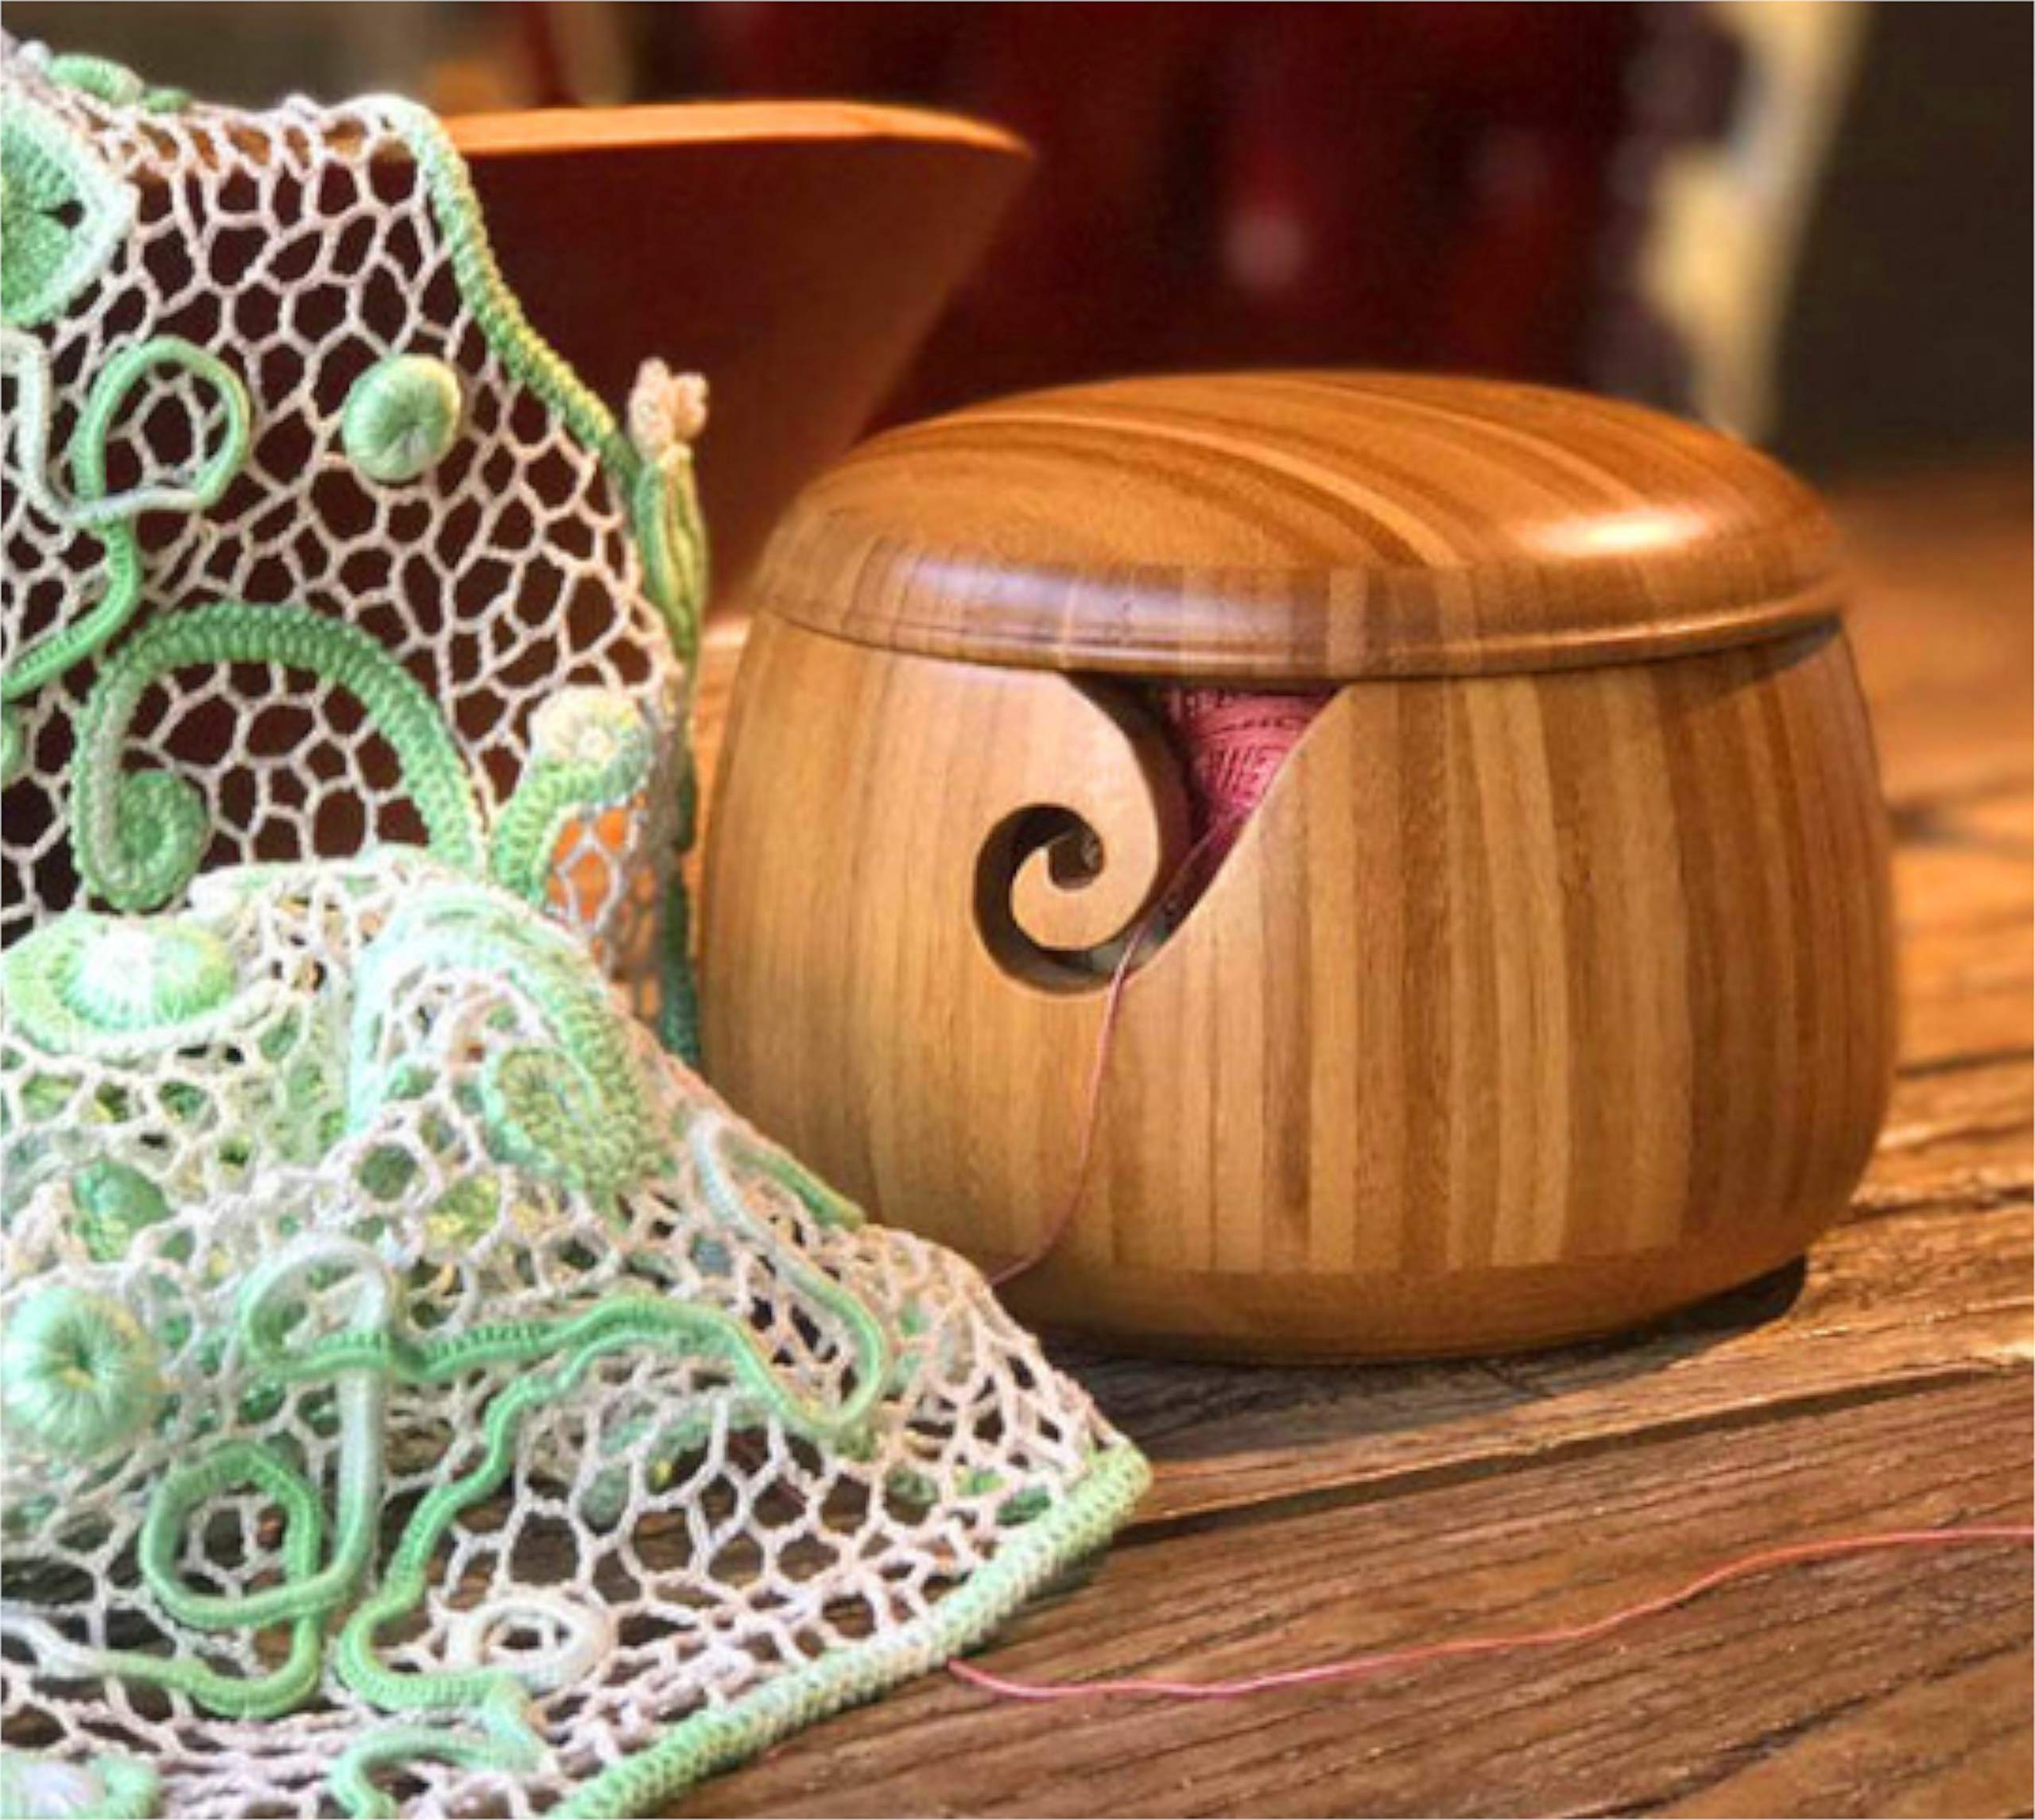 Trusafe Bamboo Yarn Bowl Knitting Accessories Yarn Holder Crochet Accessories Knitting Bowl (9'' x 9'' x 6.3'')